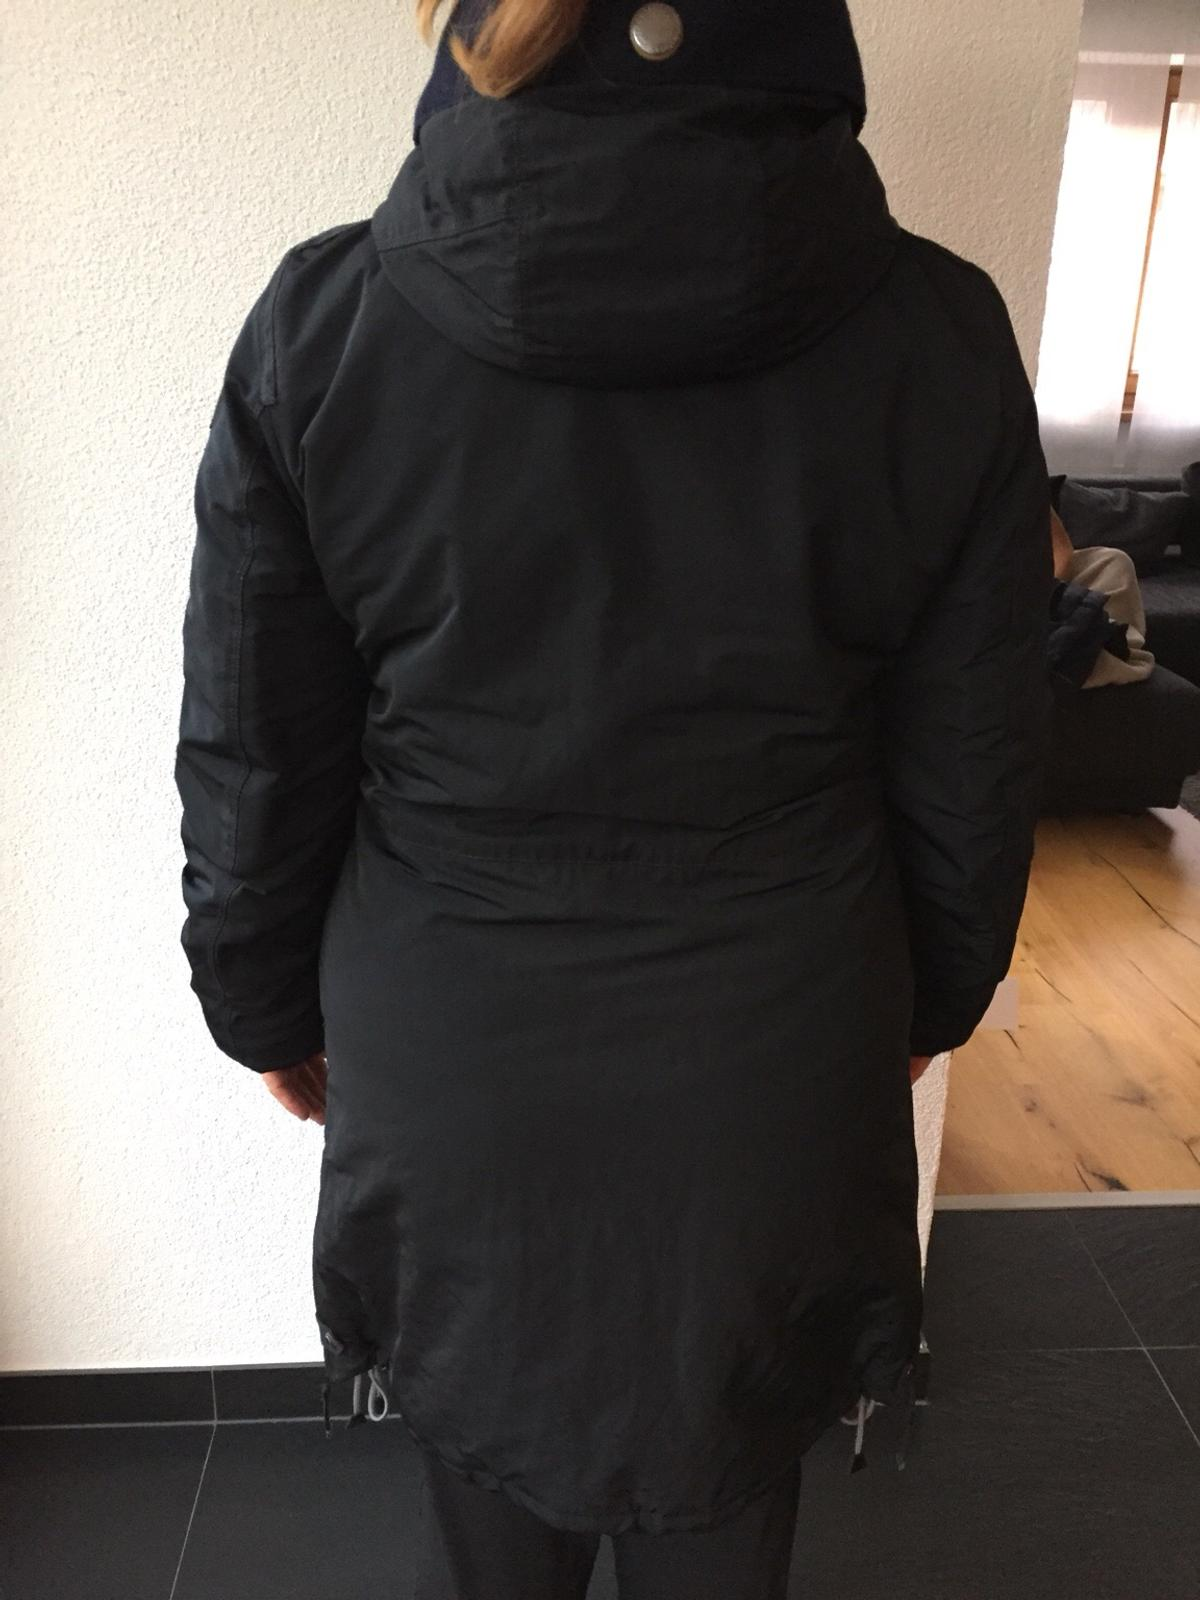 on sale ae31e 64934 Parajumpers Wintermantel Damen in 6426 Roppen für € 200,00 ...